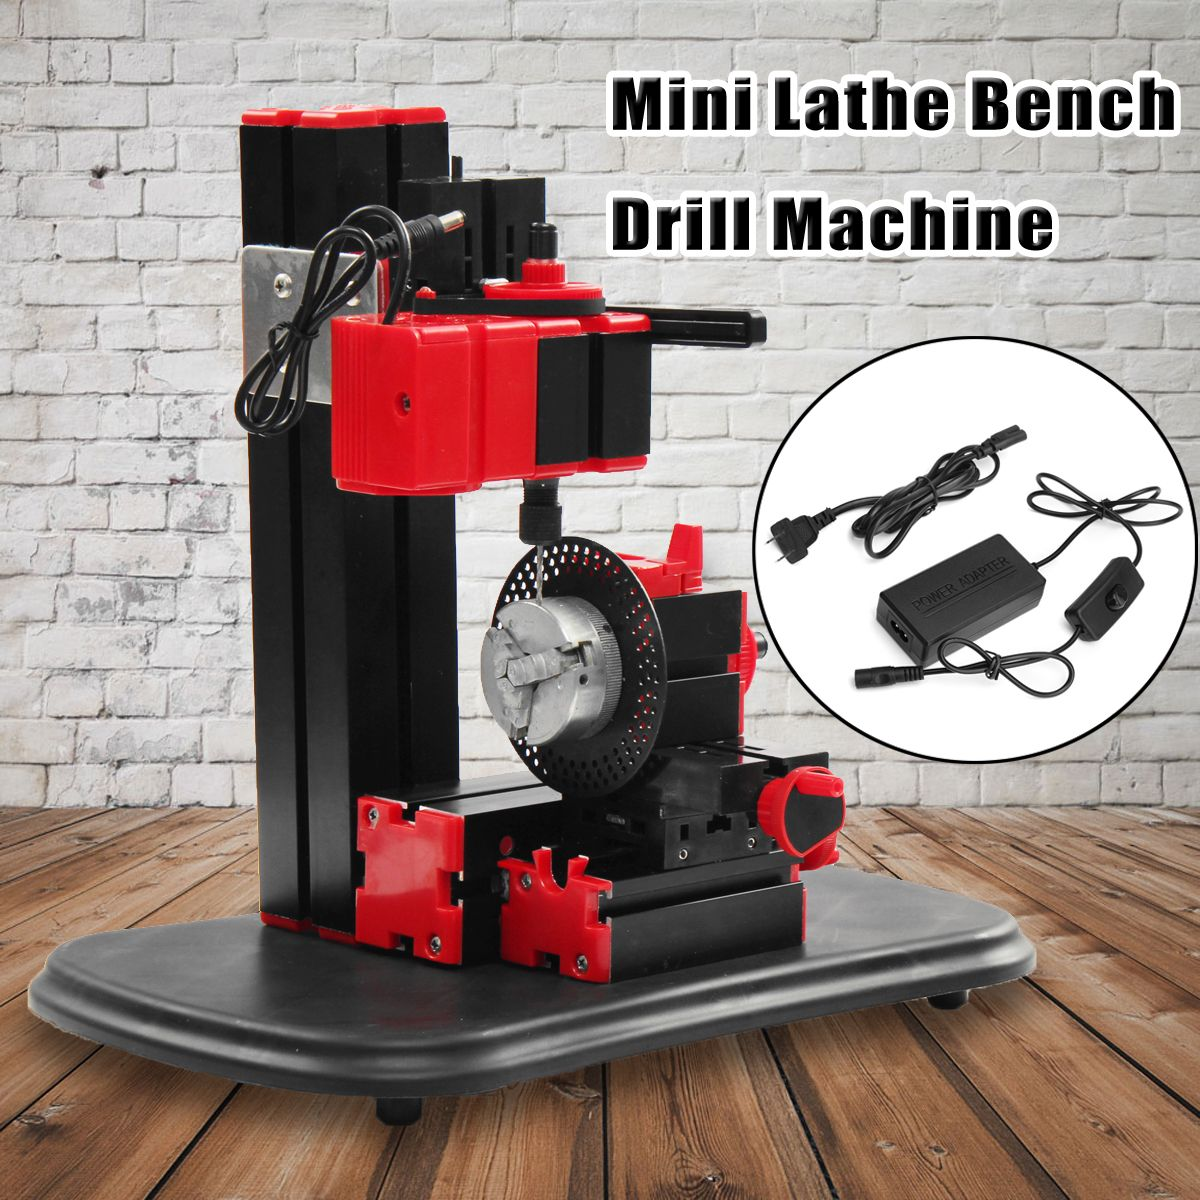 110V-240V Mini Lathe Bench Drill Machine DIY Electric Drill Woodwork Model Making Tool Lathe Milling Machine Kit